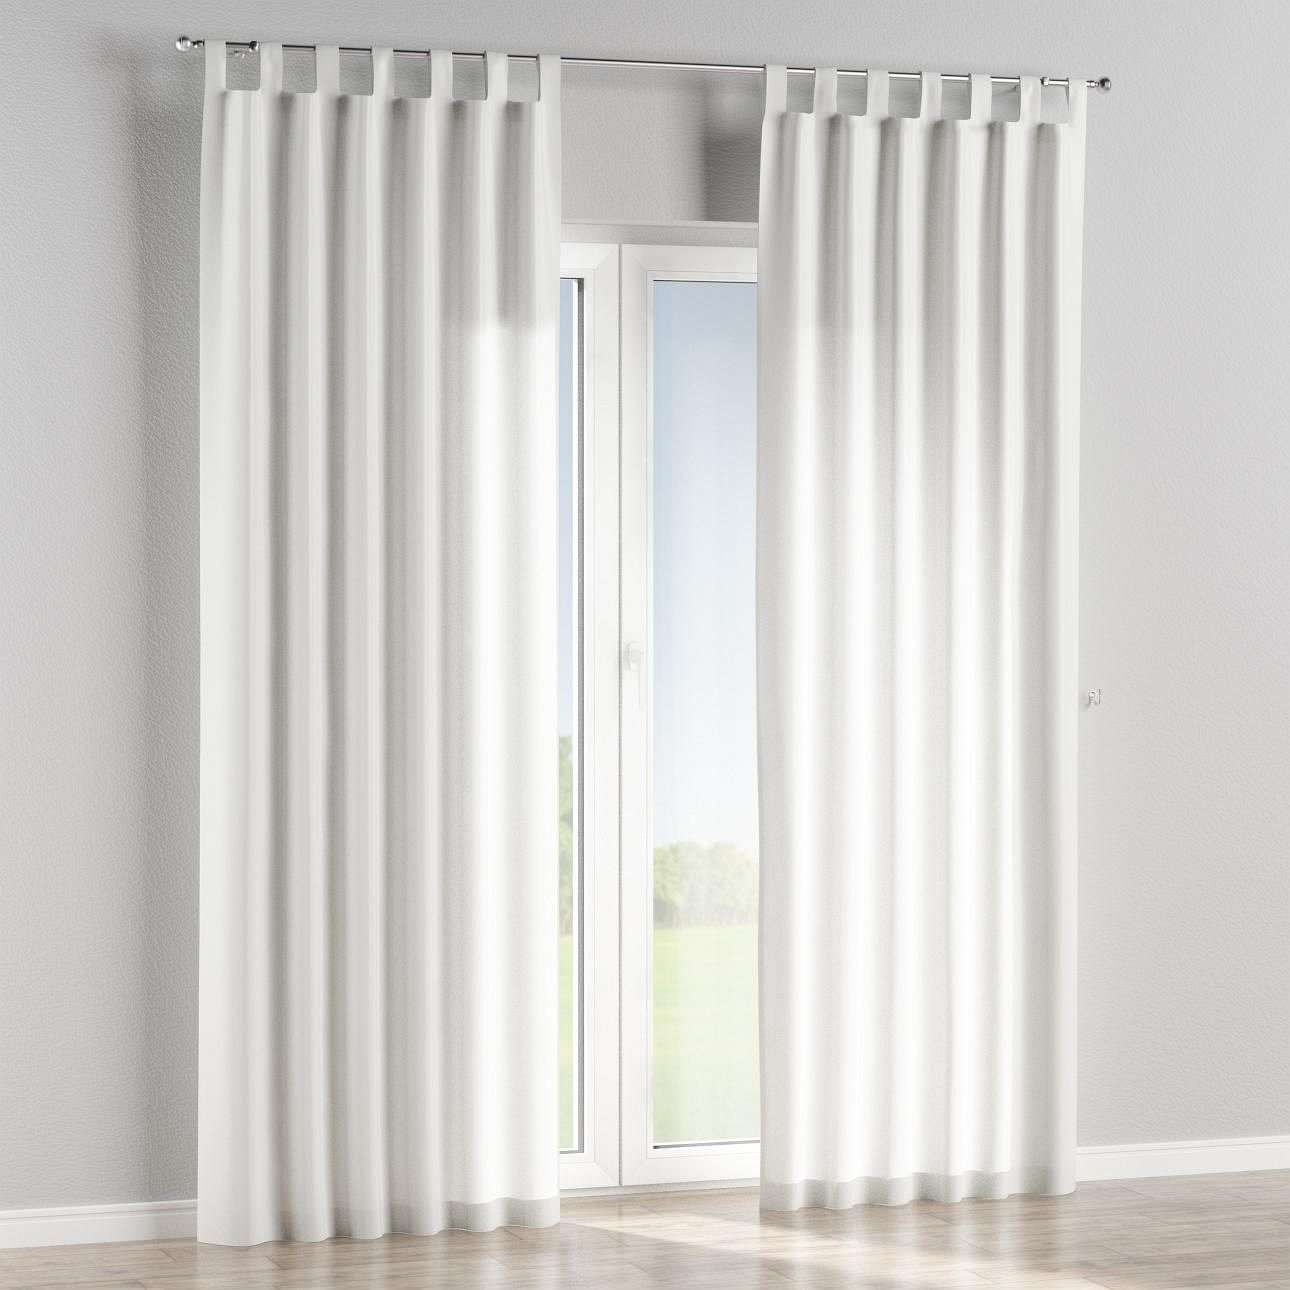 Tab top lined curtains in collection Cotton Panama, fabric: 702-05